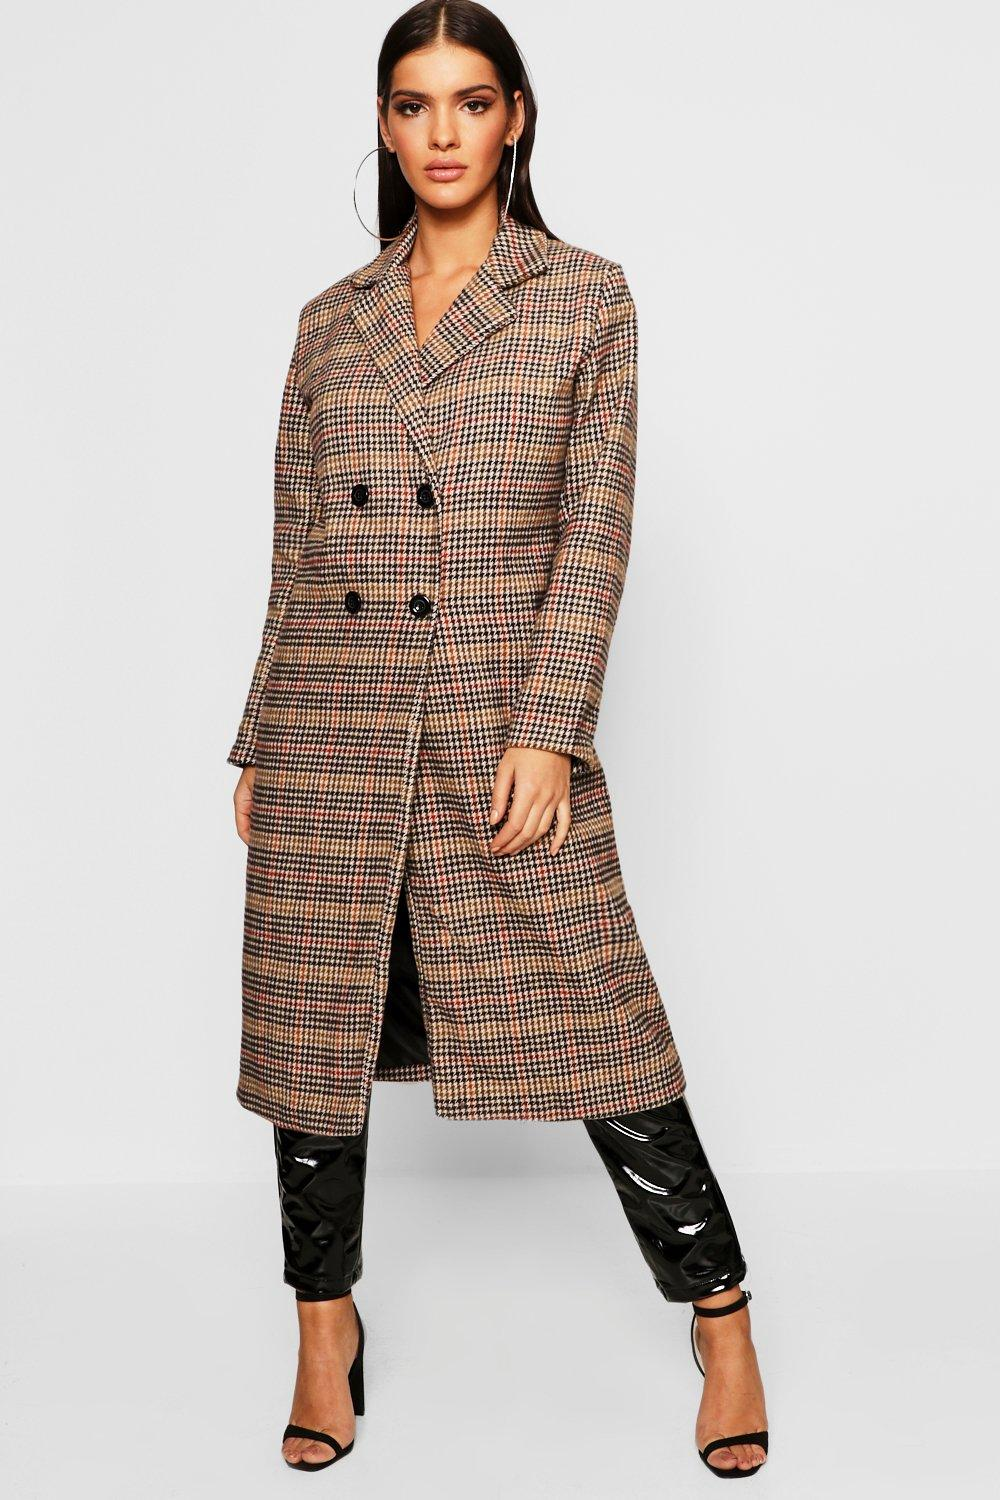 Long manteau à carreaux bord à bord | Boohoo